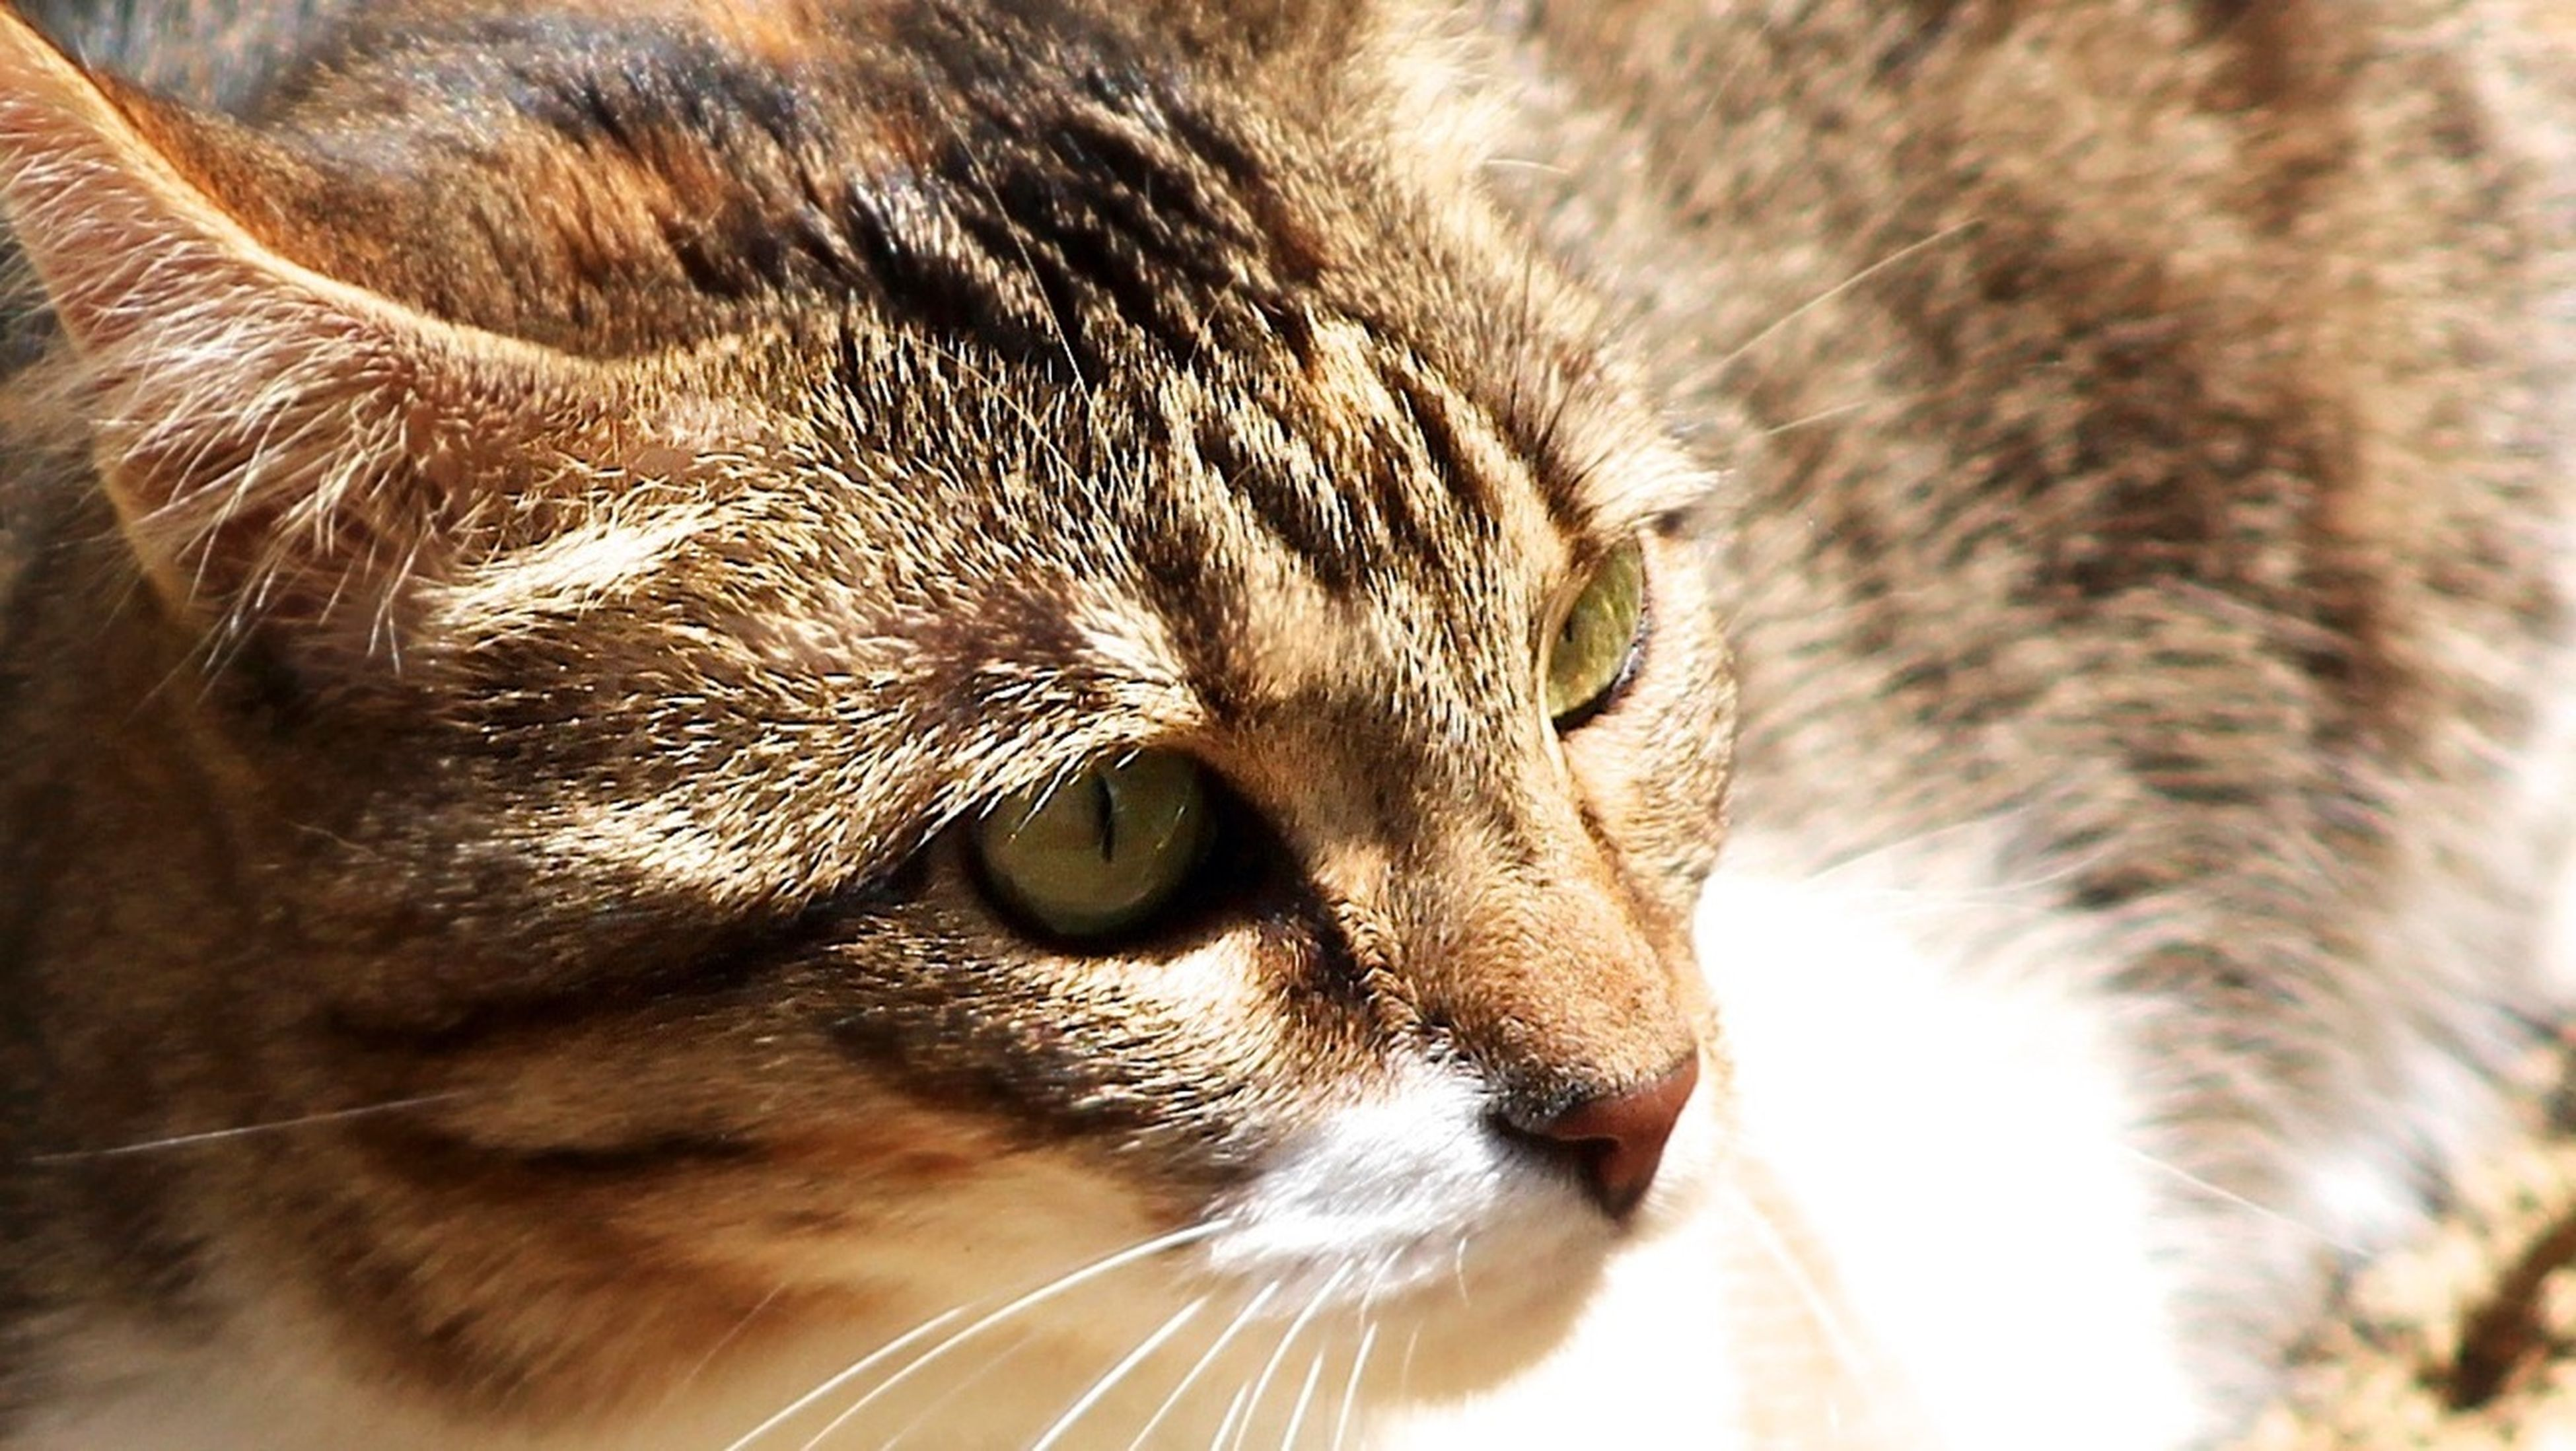 one animal, animal themes, mammal, animal head, animal eye, animal body part, whisker, pets, domestic cat, close-up, domestic animals, feline, cat, part of, portrait, looking at camera, alertness, wildlife, staring